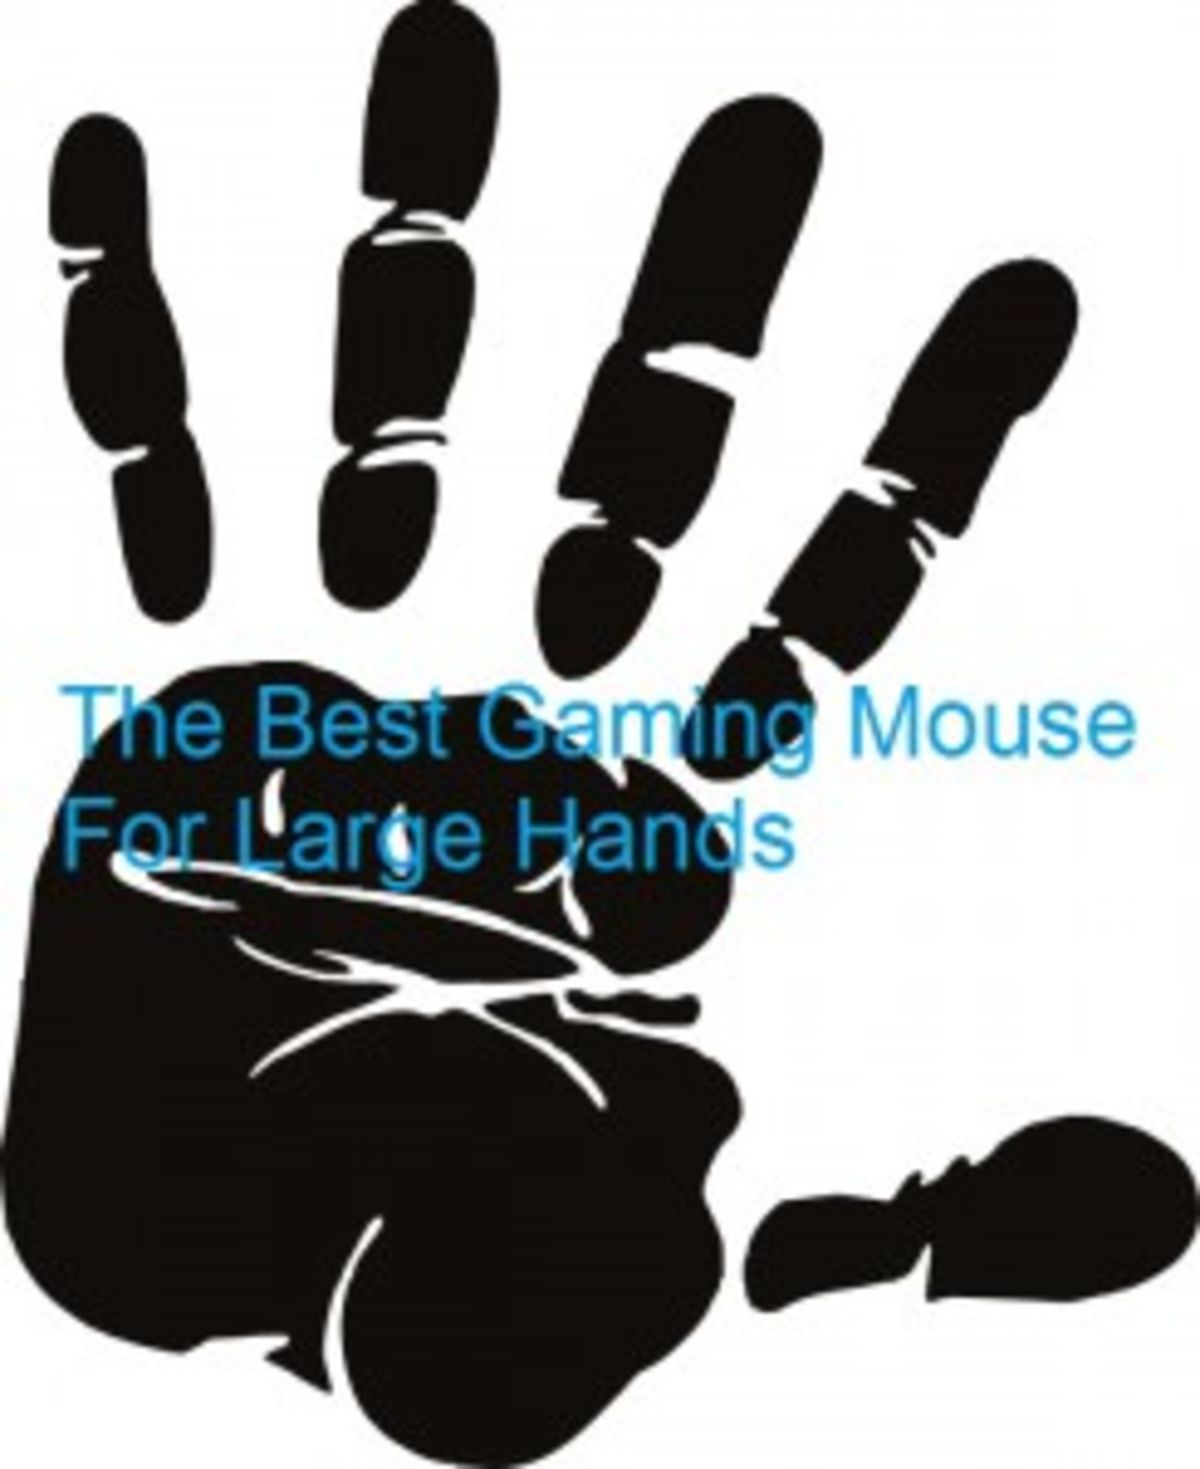 The Best Gaming Mouse For Large Hands 2016 | A Listly List